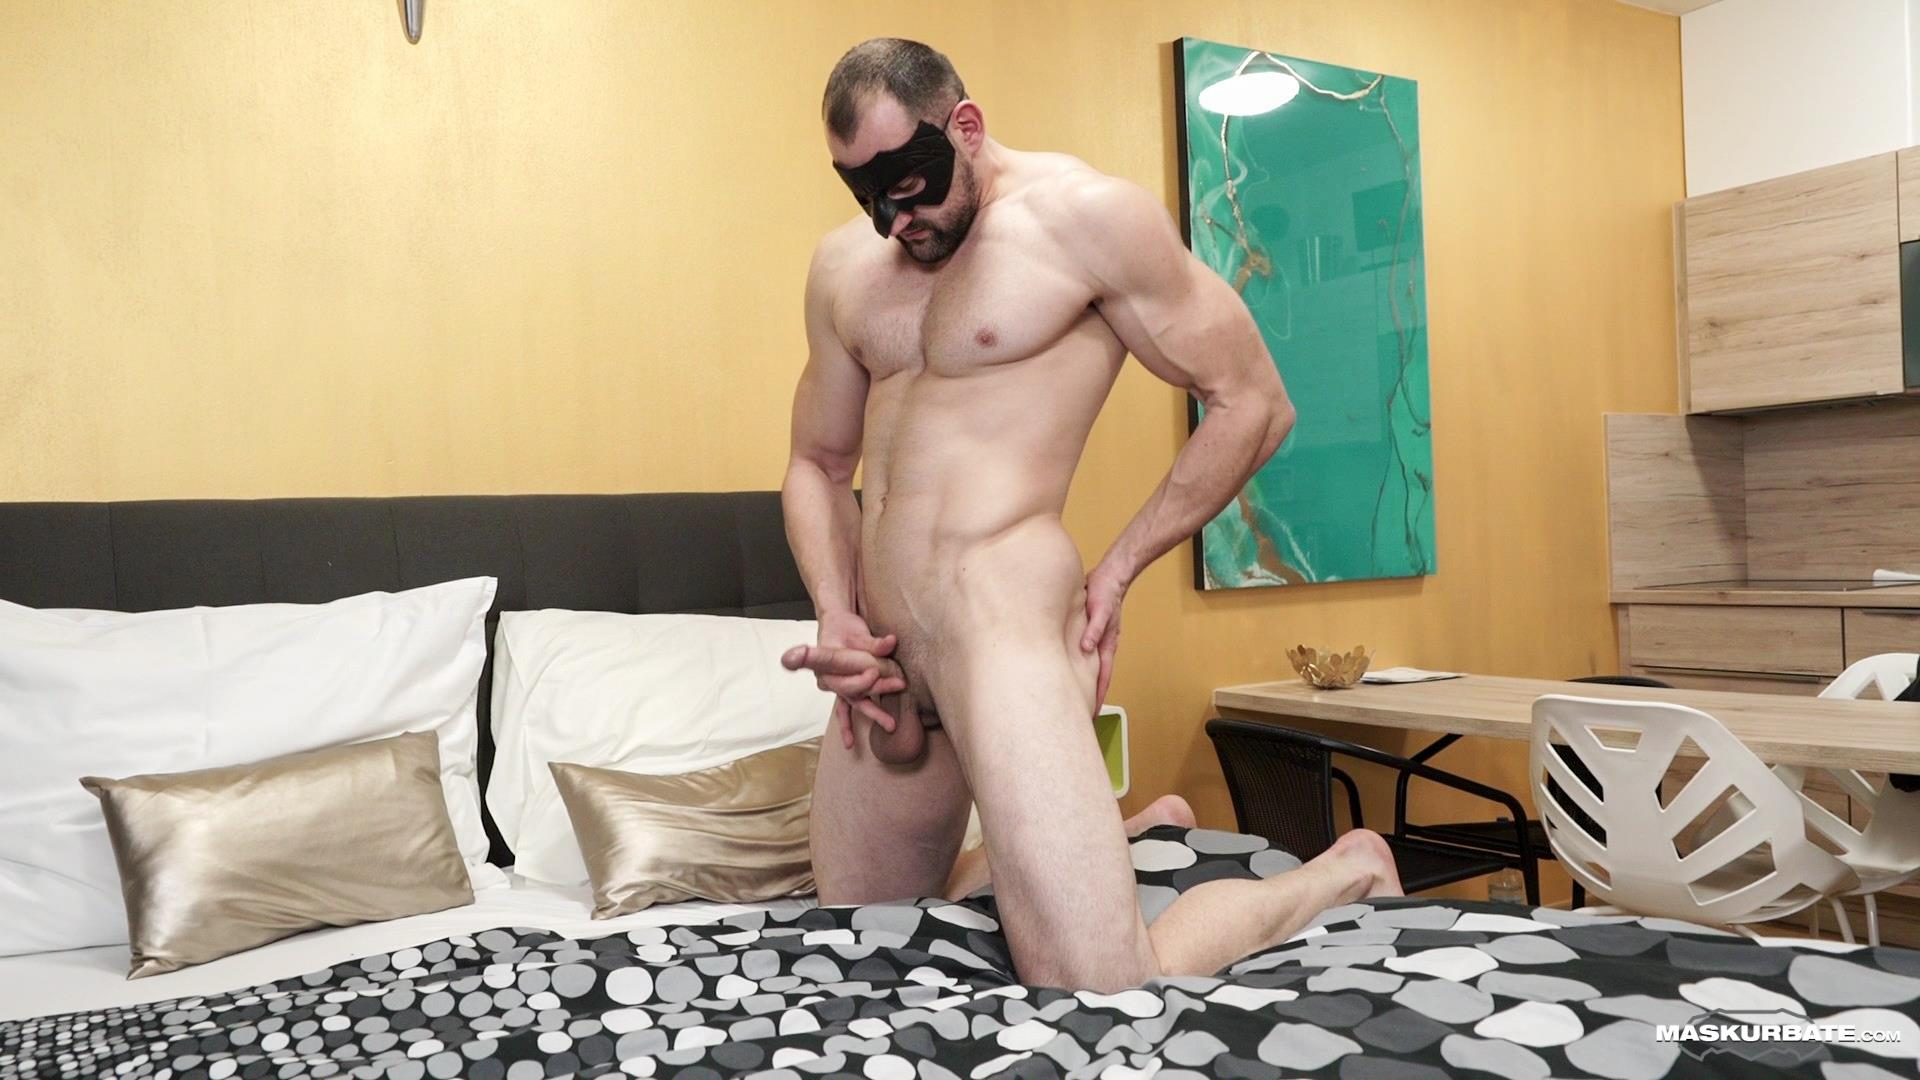 Maskurbate-Obaid-Bisexual-Muscle-Hunk-With-A-Big-Uncut-Cock-Jerking-off-13 Bisexual Muscle Hunk Jerks Off His Big Uncut Cock